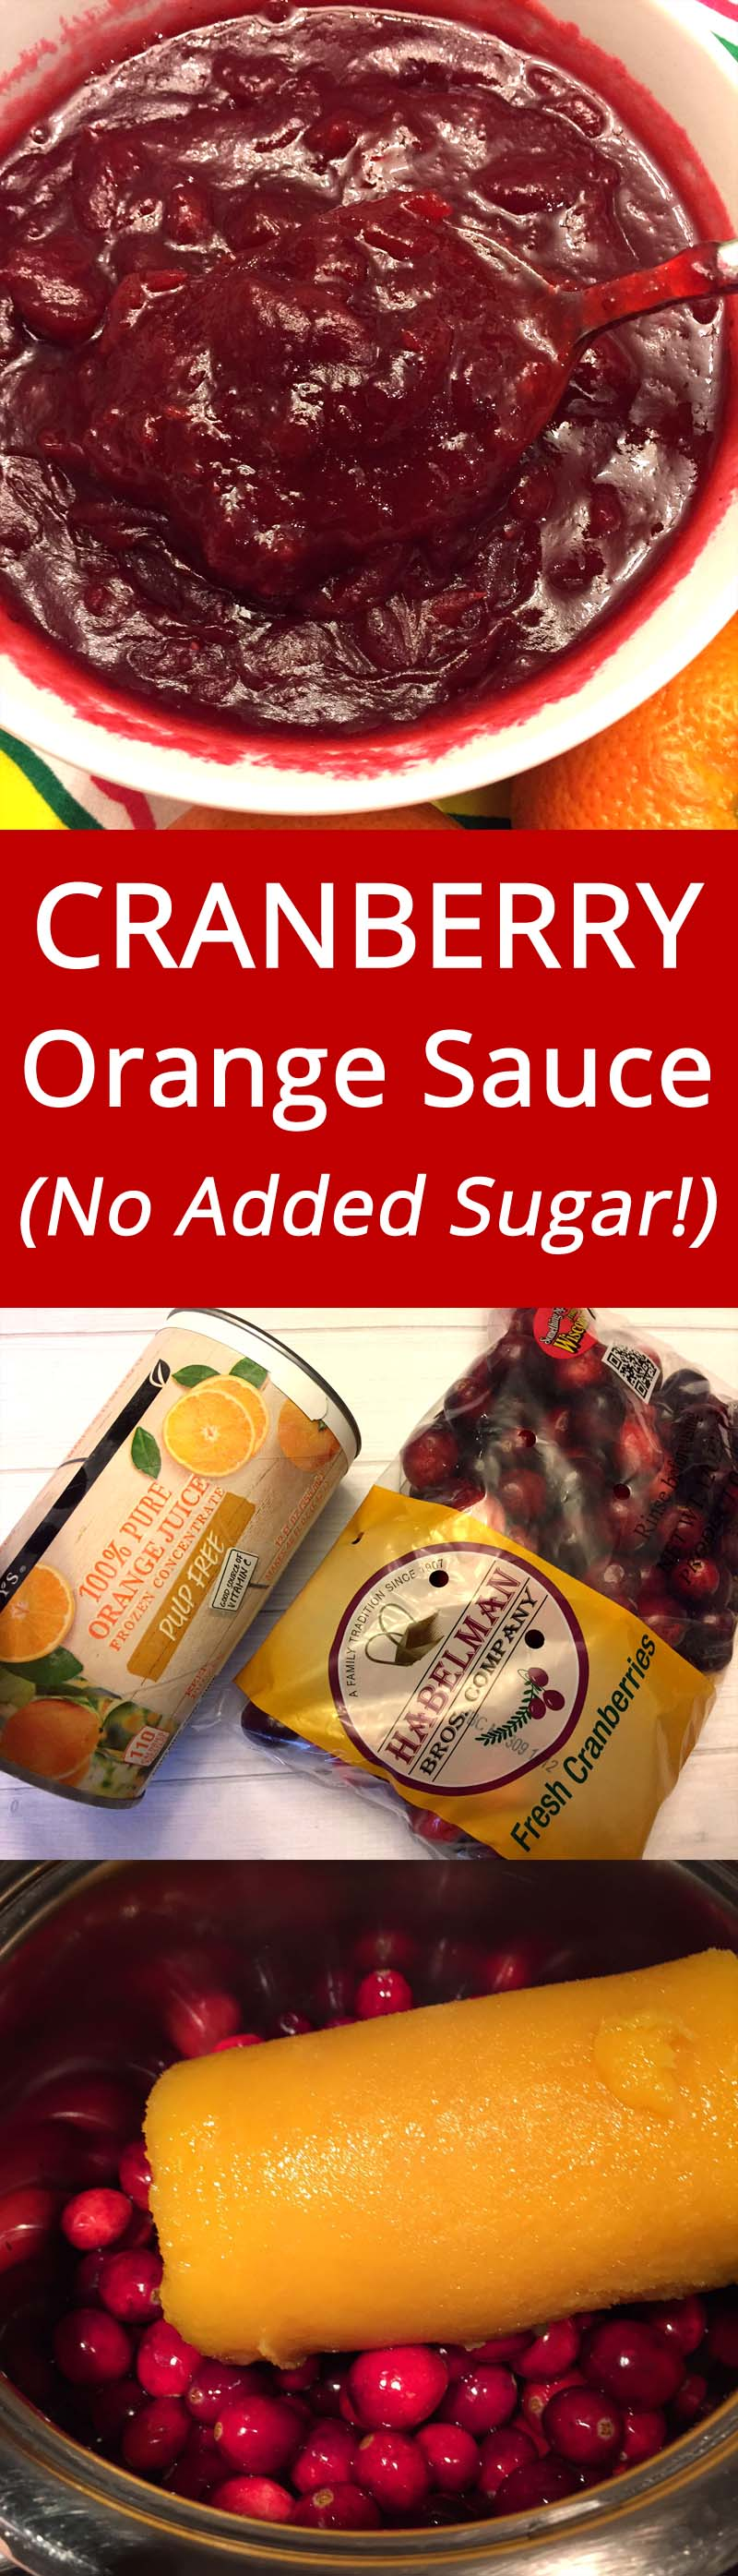 Healthy Cranberry Orange Sauce With NO ADDED SUGAR - this is genius! | MelanieCooks.com